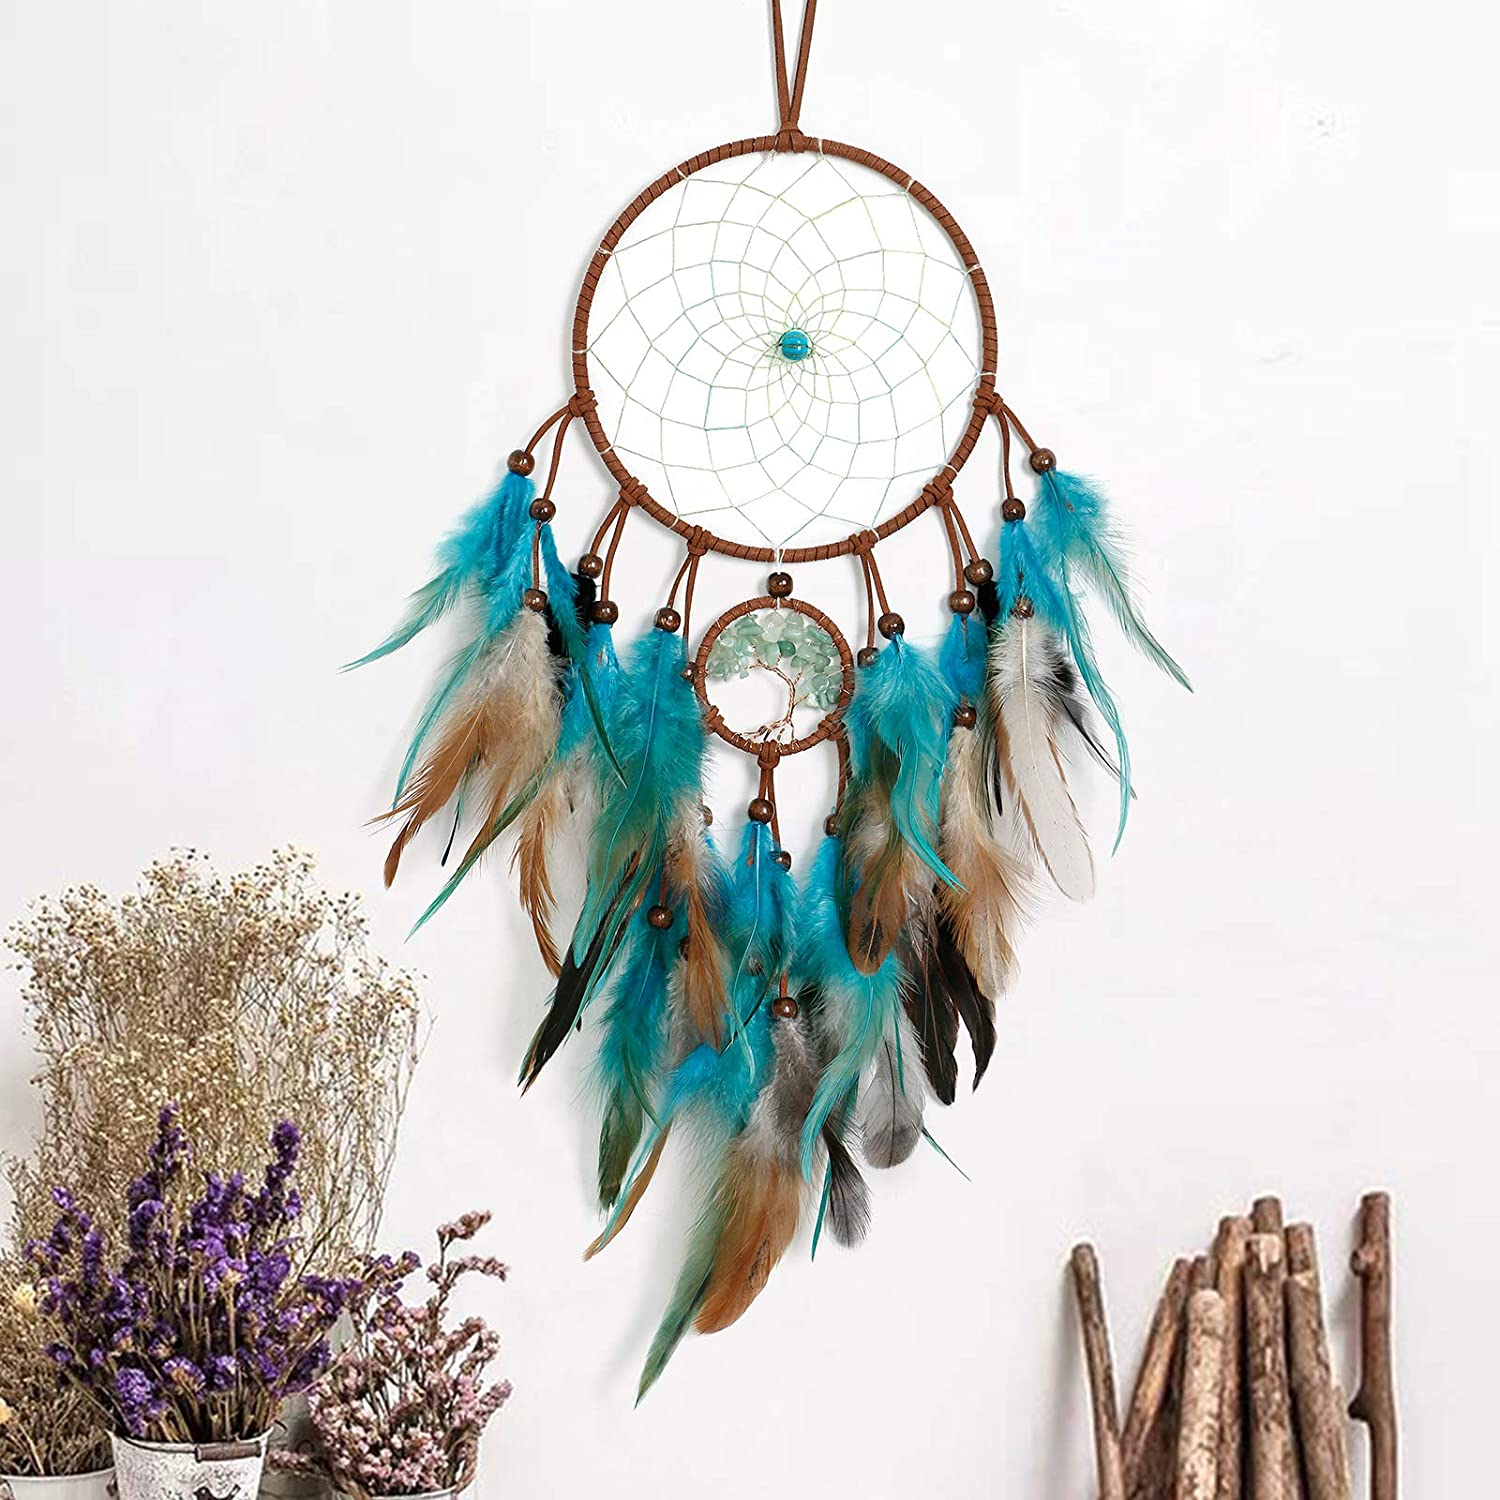 LOMOHOO Dream Catcher Tree of Life Double Circle Handmade Traditional Feather Dreamcatcher Wall Art Hanging Boho Bedroom Decor Bohemian Sitting Room Home Decoration Ornament Craft